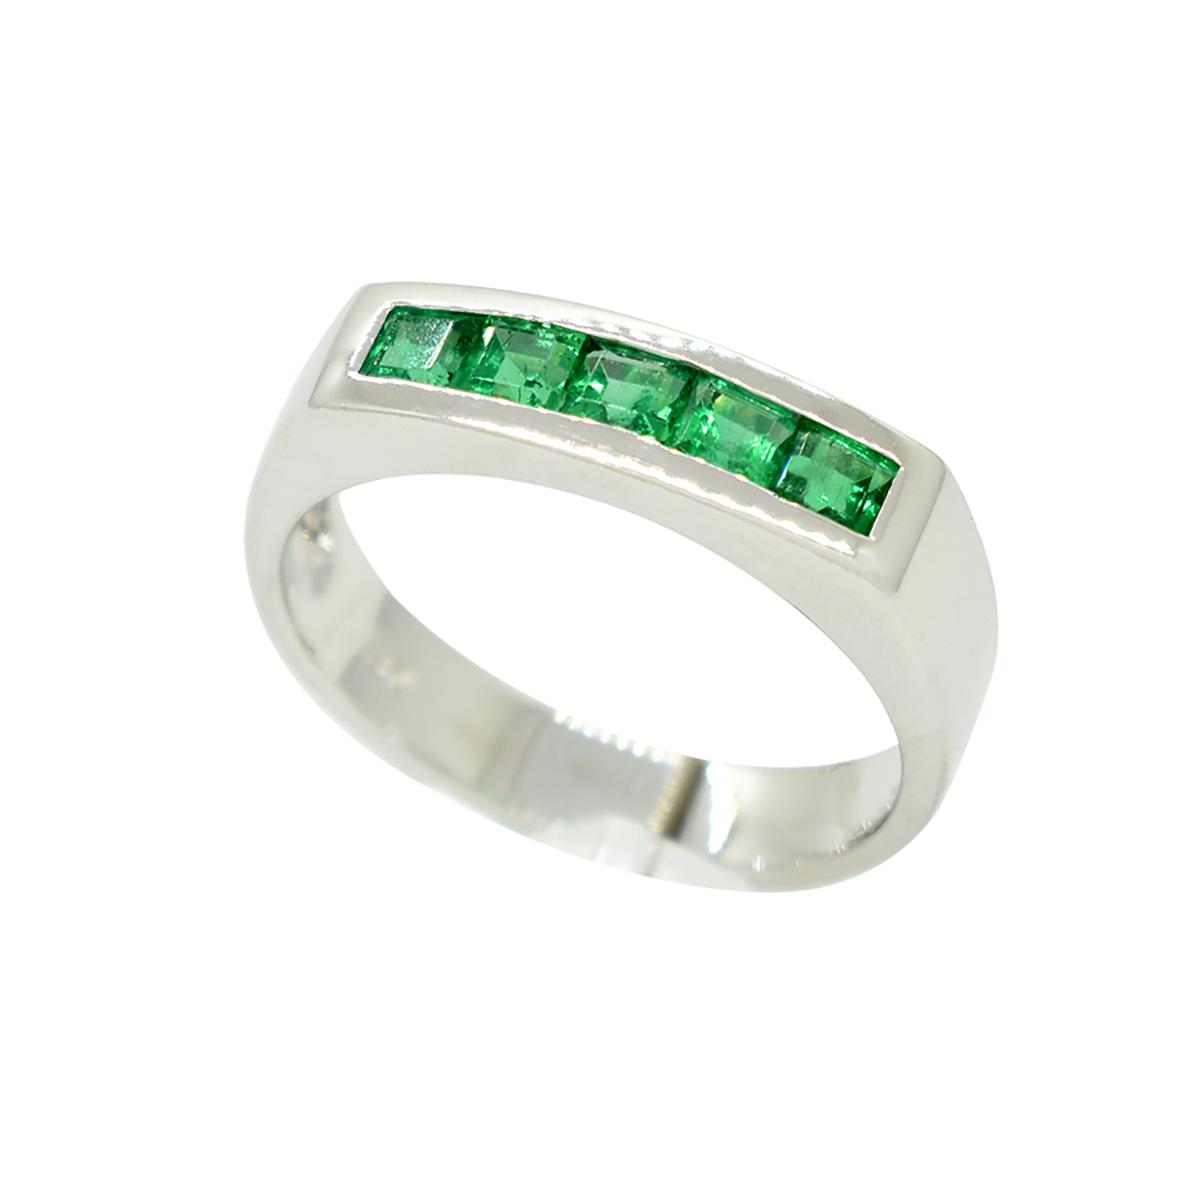 channel-set-emerald-wedding-band-with-square-emeralds-in-18k-white-gold